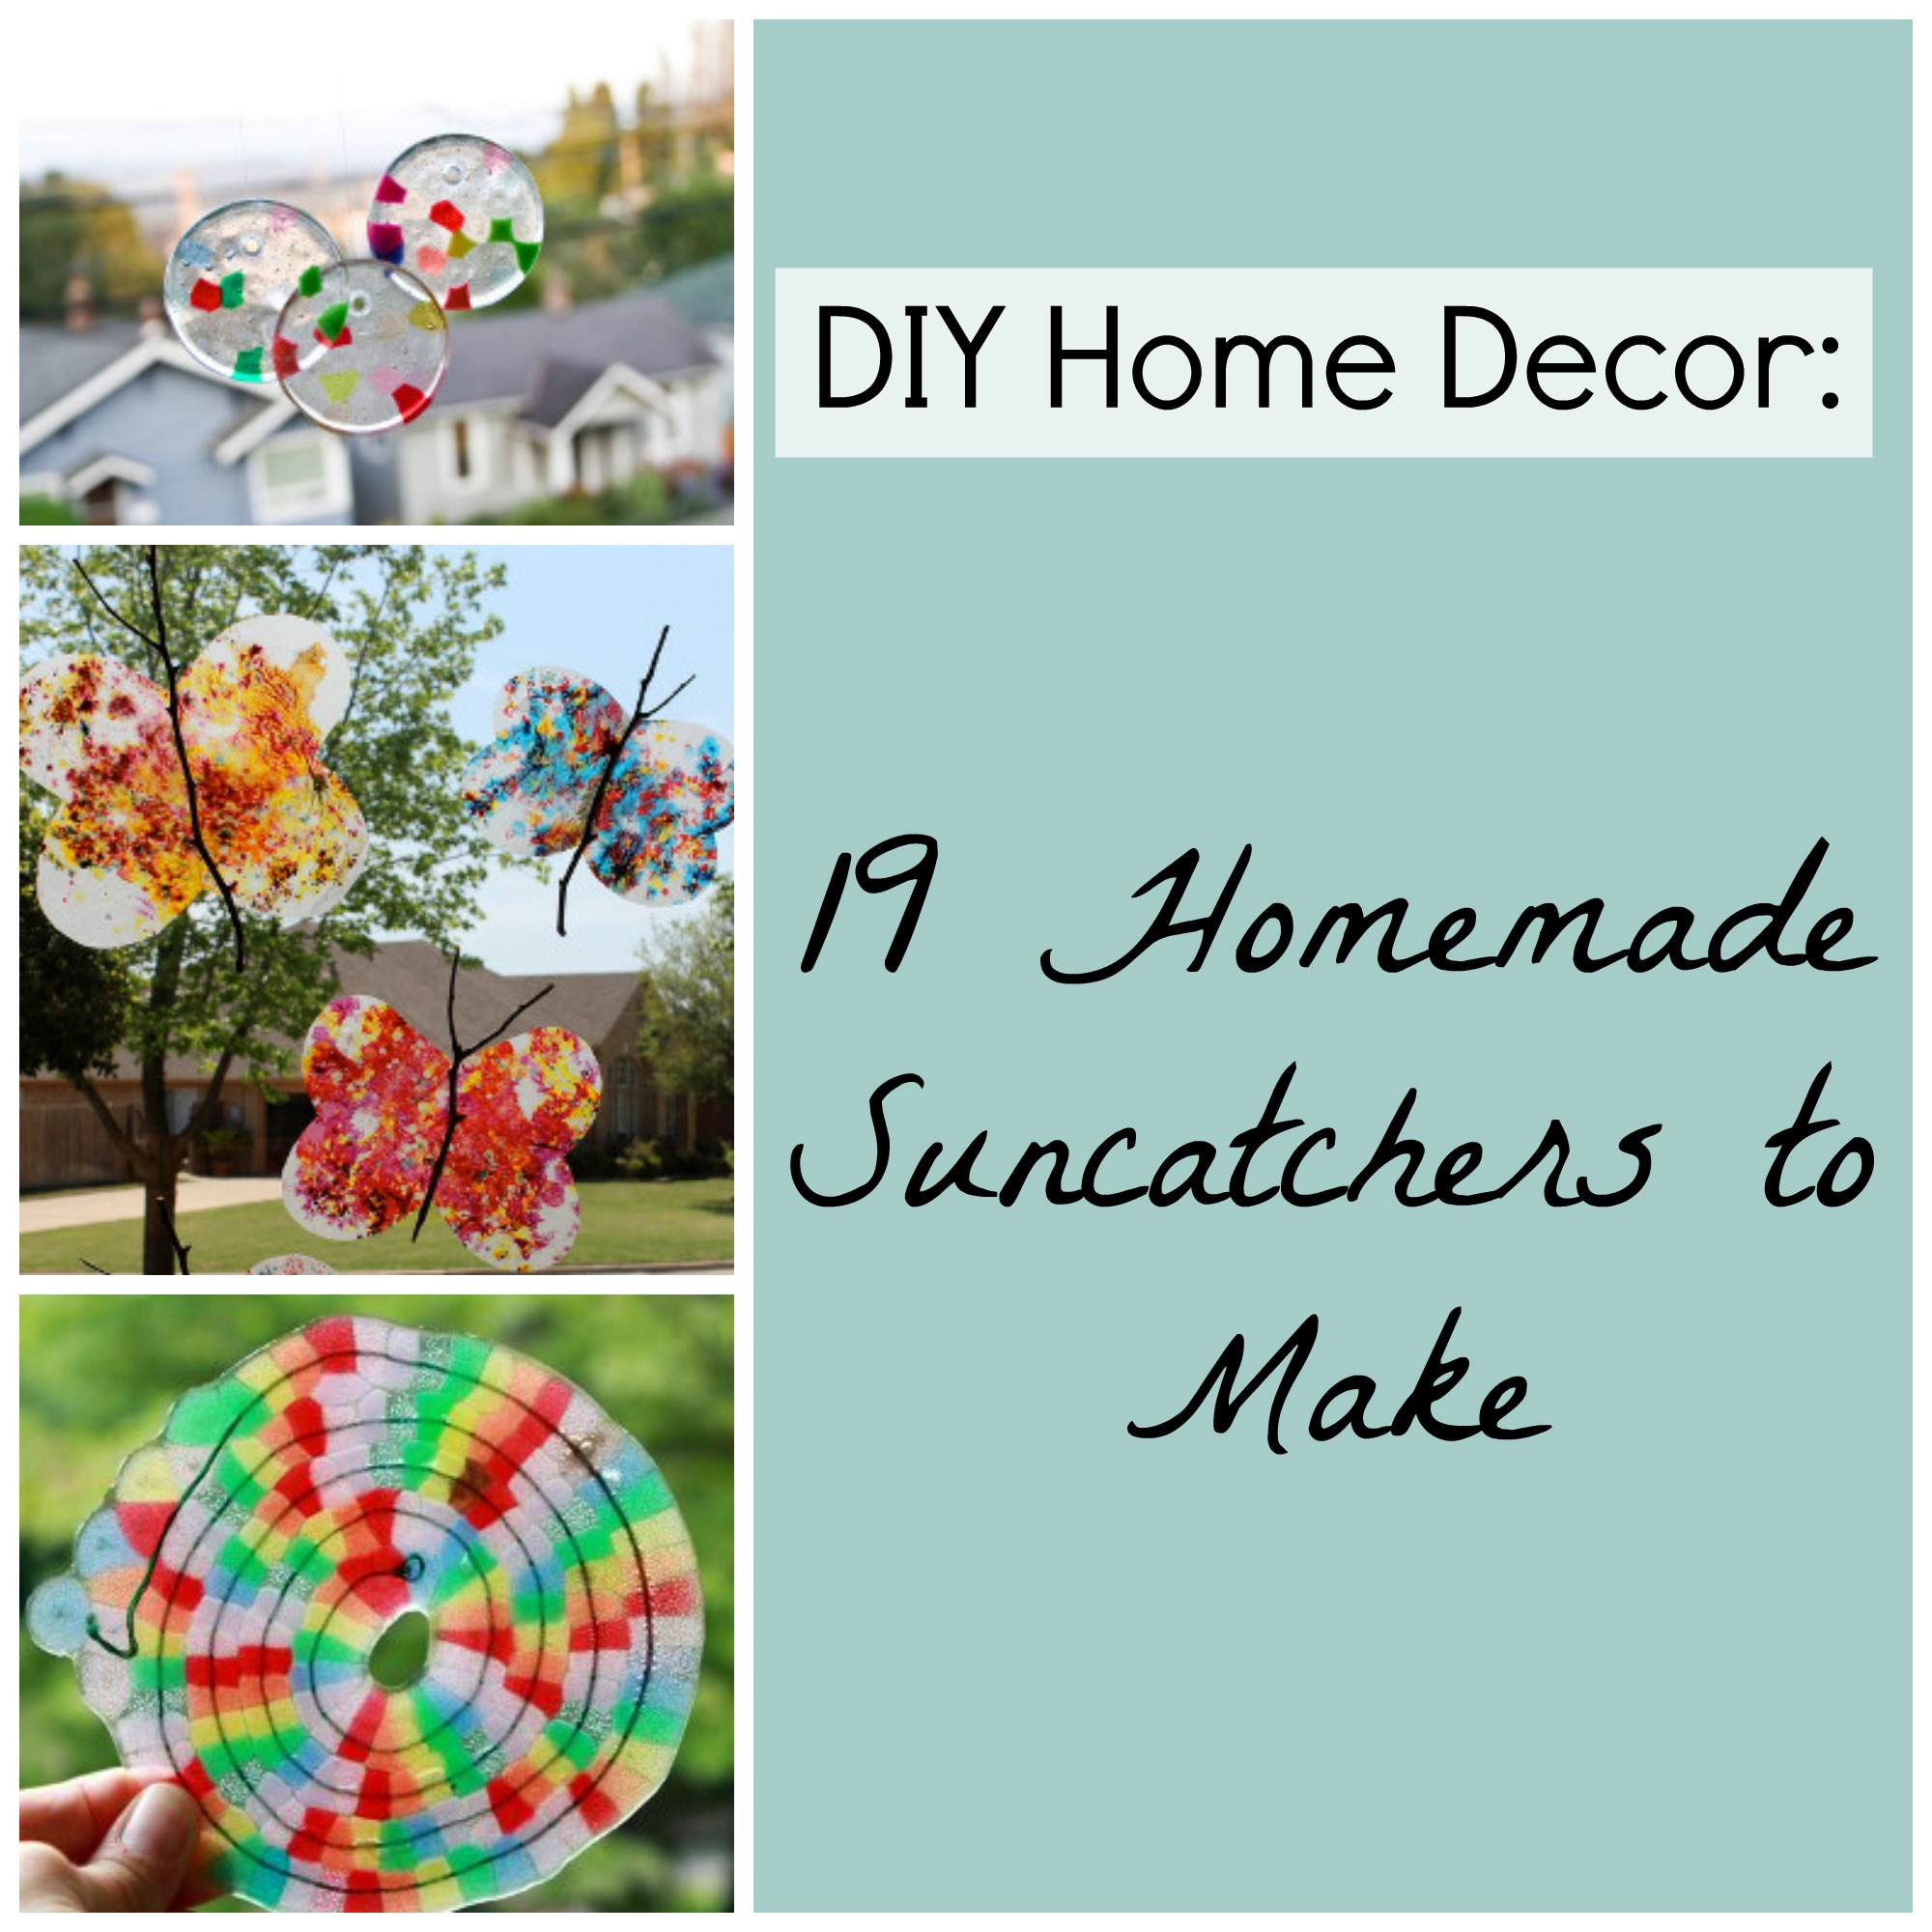 DIY Home Decor: 19 Homemade Suncatchers to Make